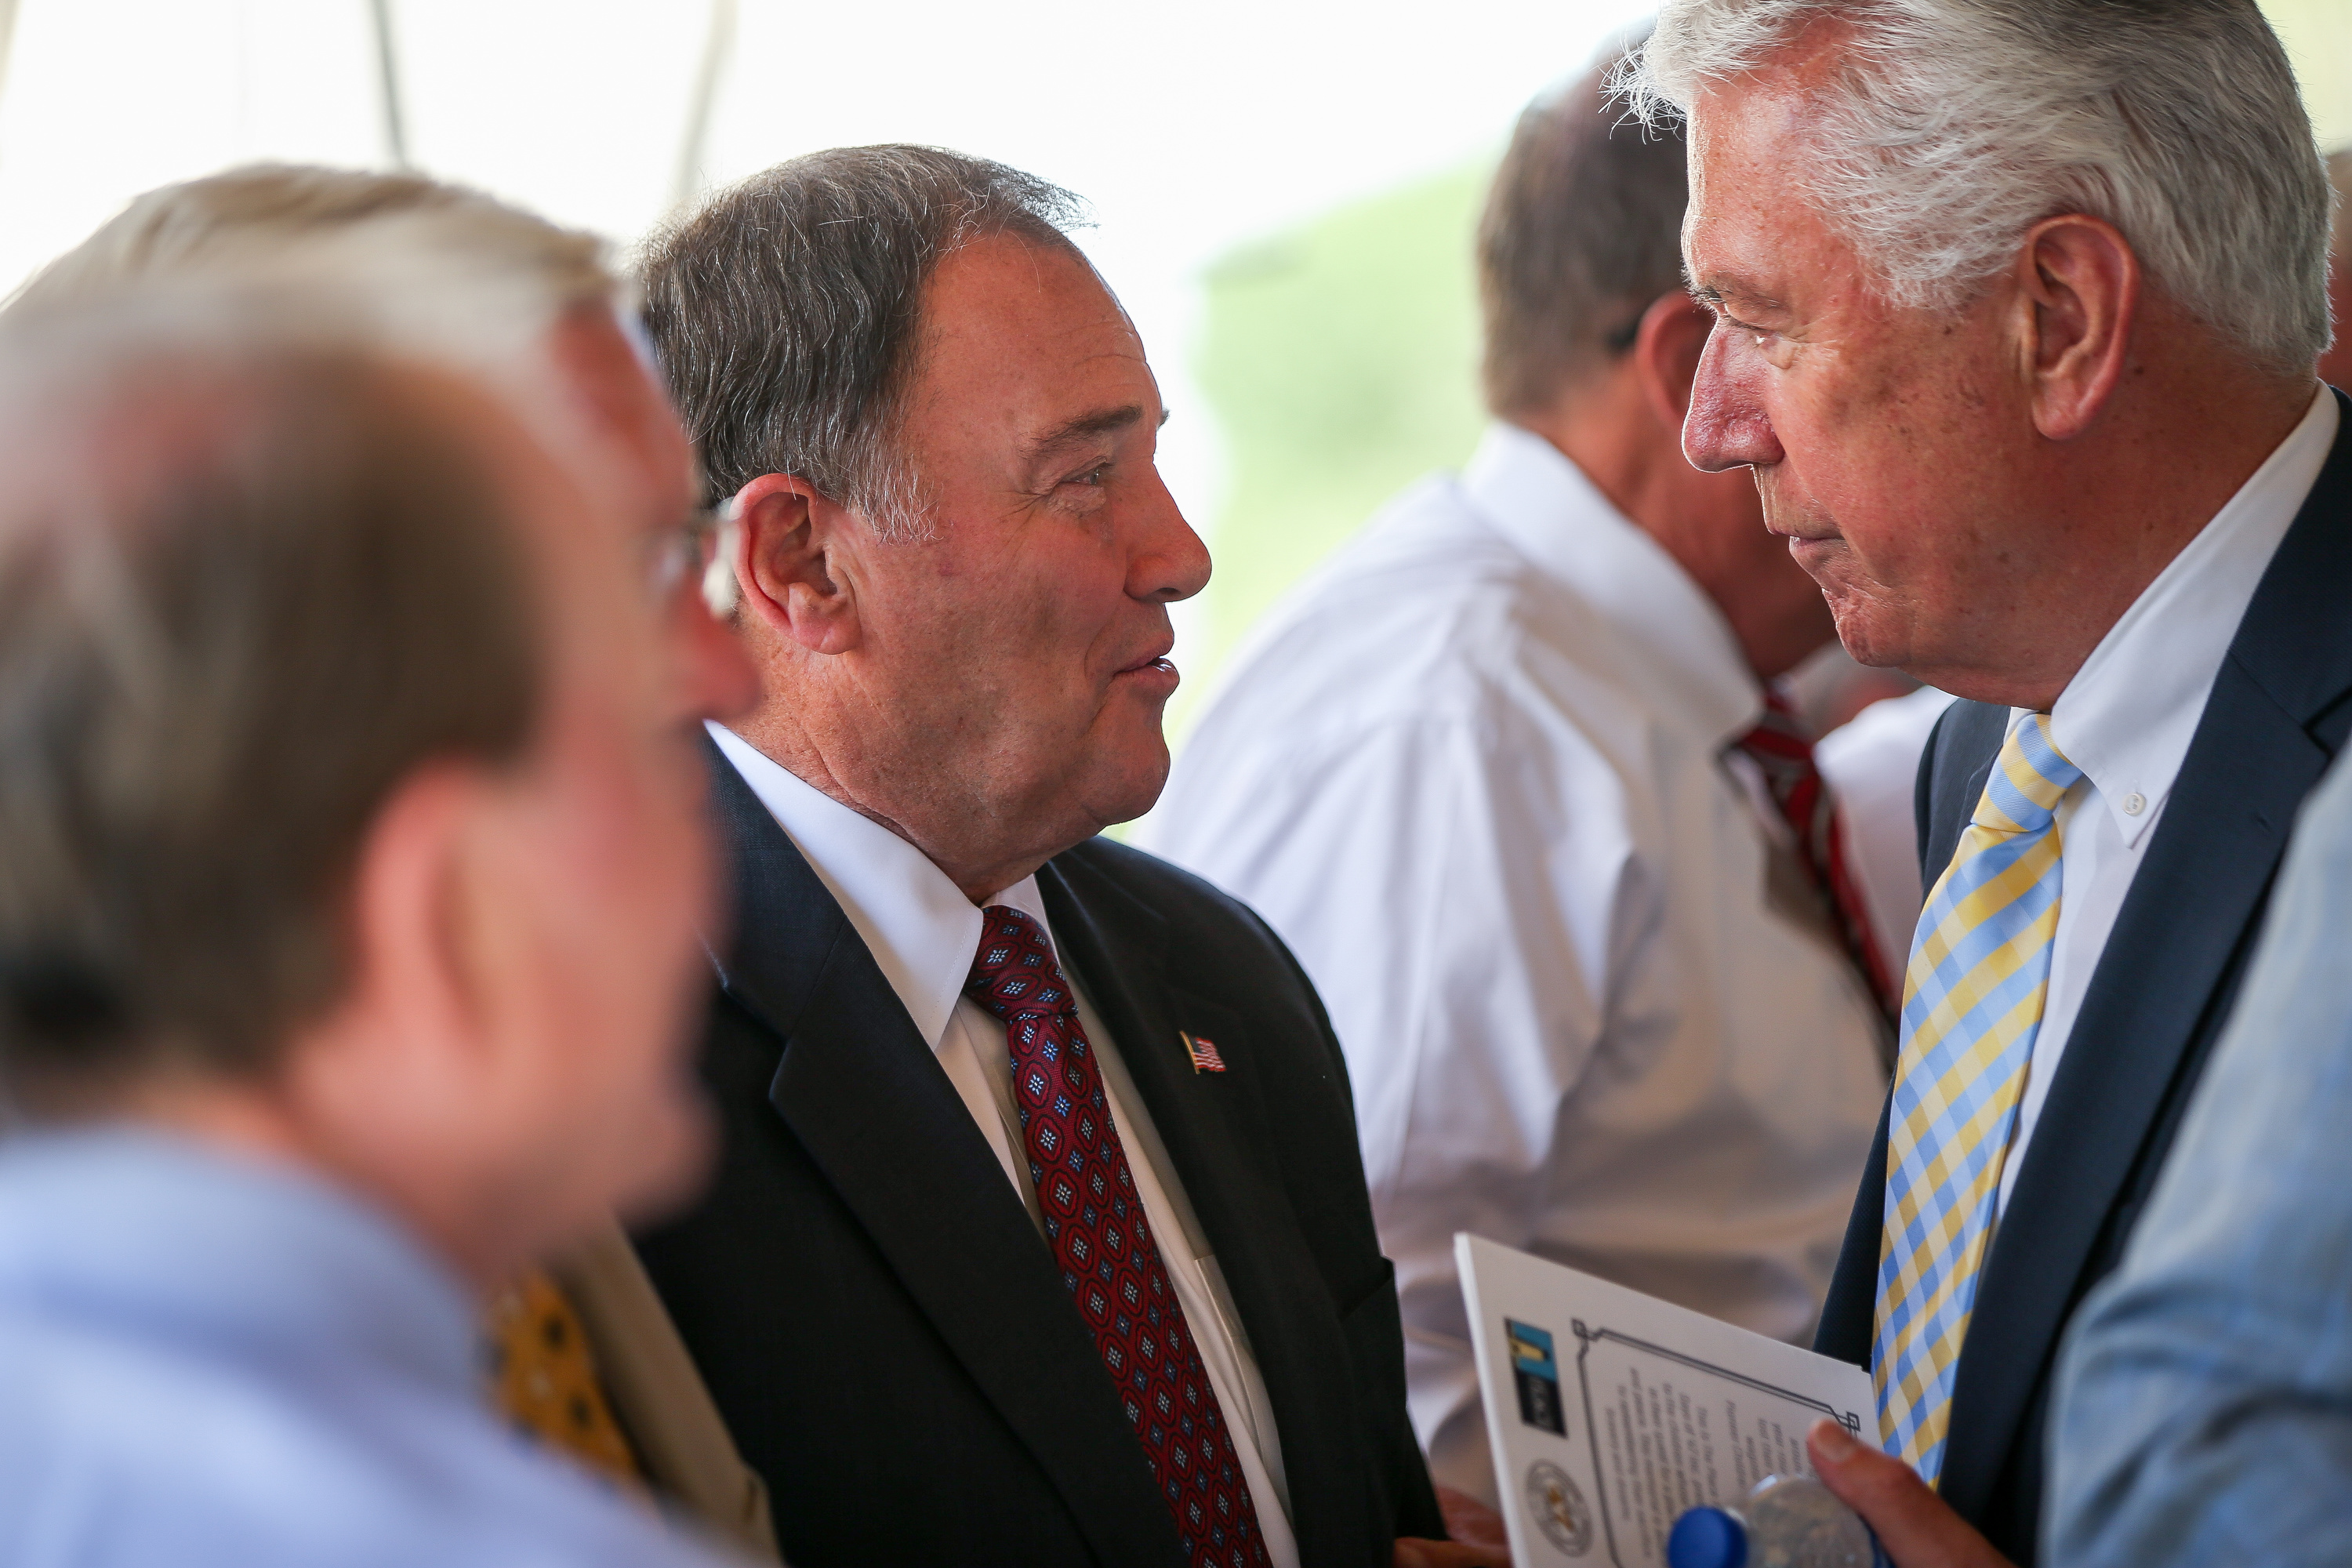 Gov. Gary Herbert, center, talks with Elder Dieter F. Uchtdorf of the Quorum of the Twelve Apostles of The Church of Jesus Christ of Latter-day Saints, right, at the dedication of the Children's Pioneer Memorial at This Is the Place Heritage Park in Salt Lake City on Saturday, July 20, 2019.